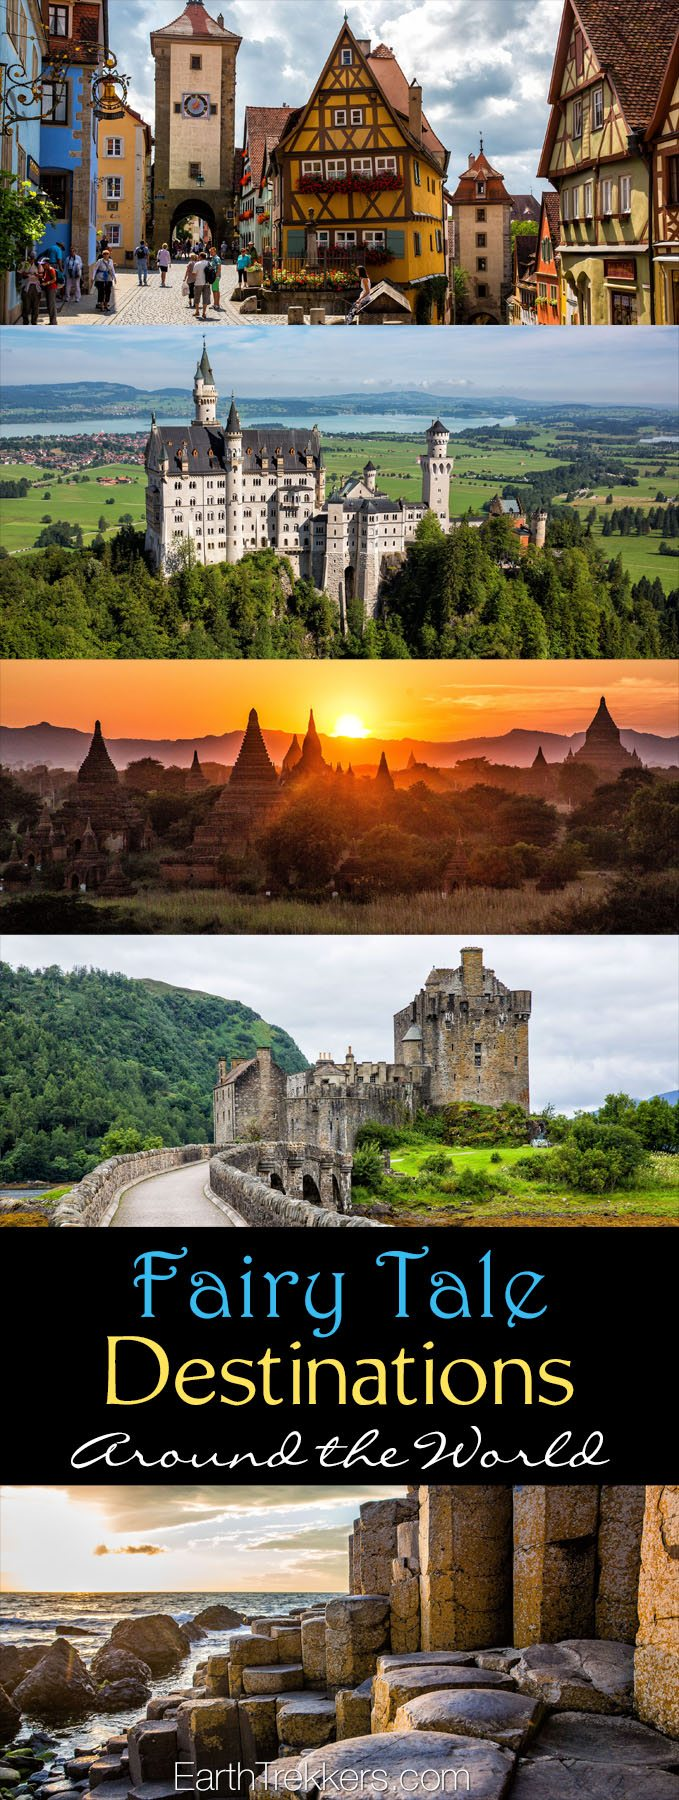 Fairytale Destinations: 10 Magical Places to Visit in Your ...